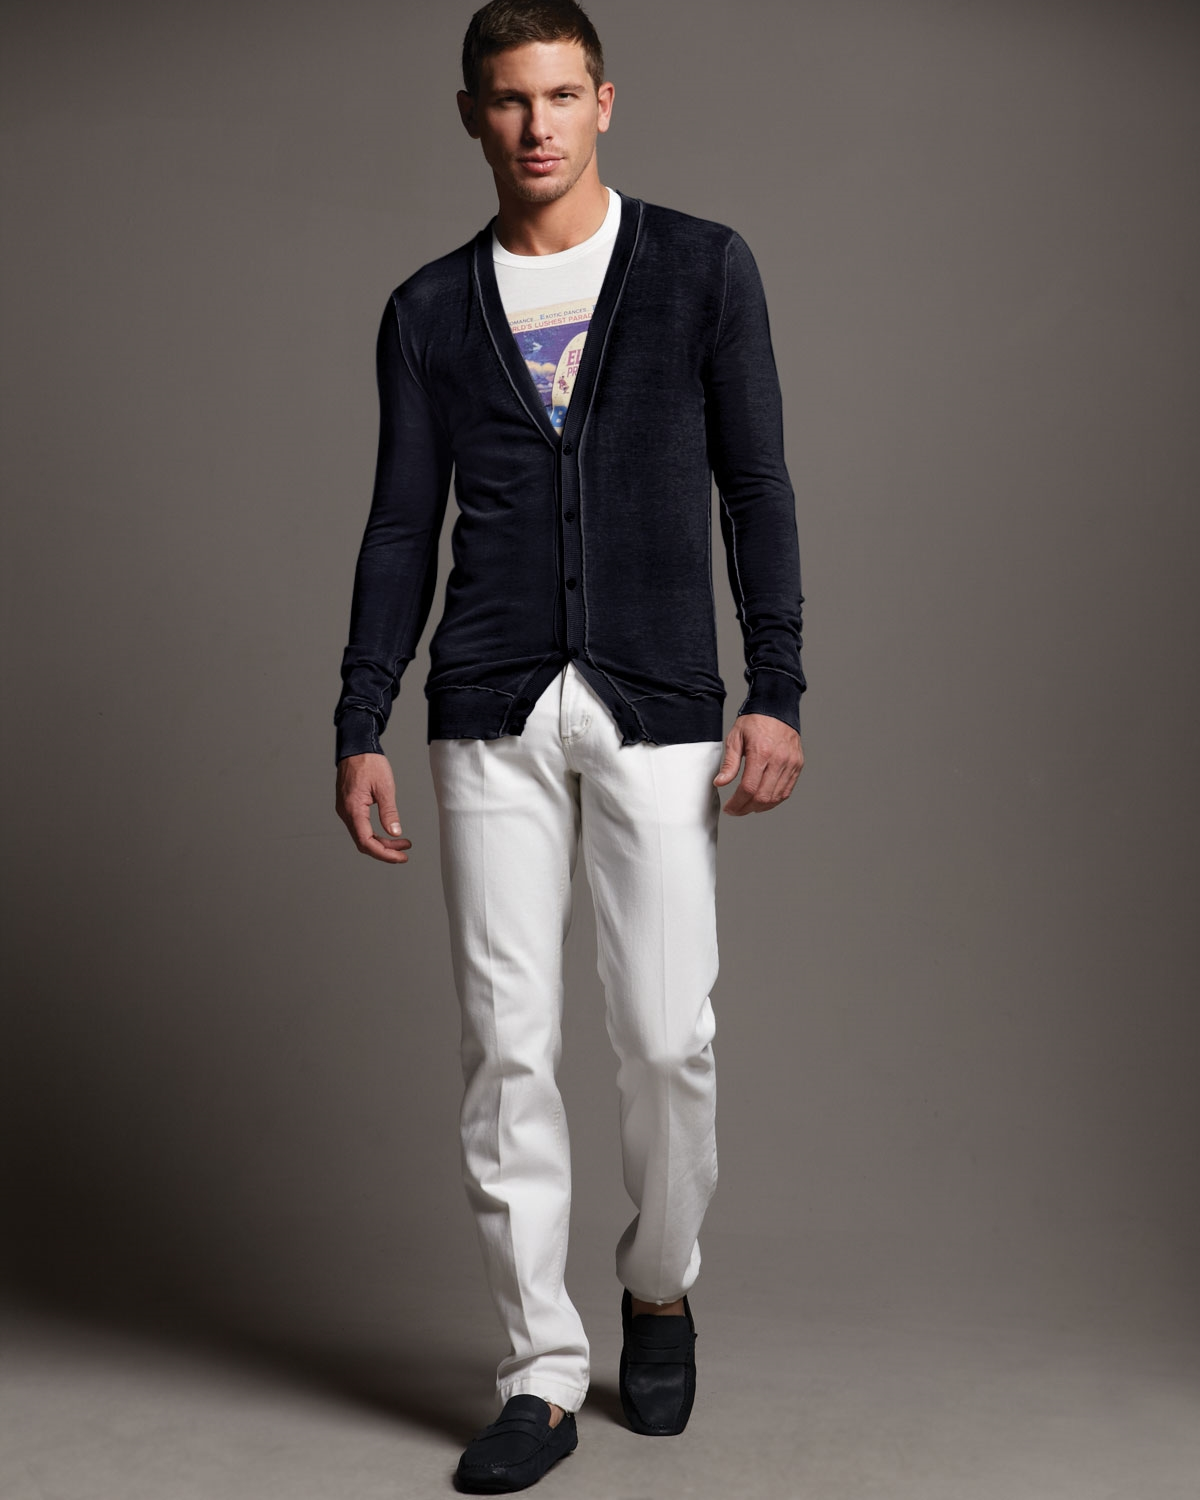 urban men�s casual fashion 20152016 fashion trends 2016